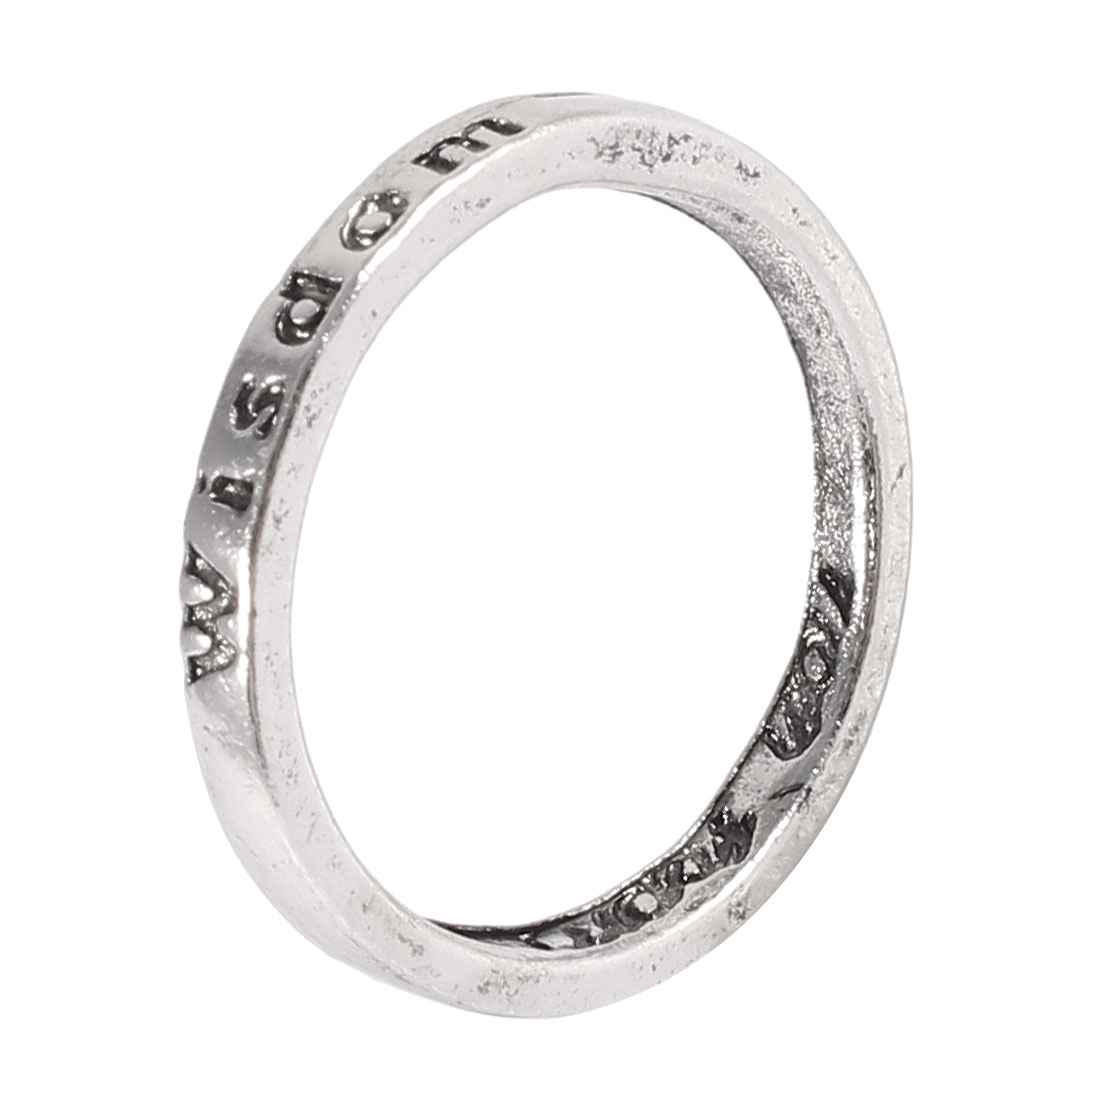 Ladies Silver Tone Metal Wisdom Letter Carved Finger Ring Decoration Gift